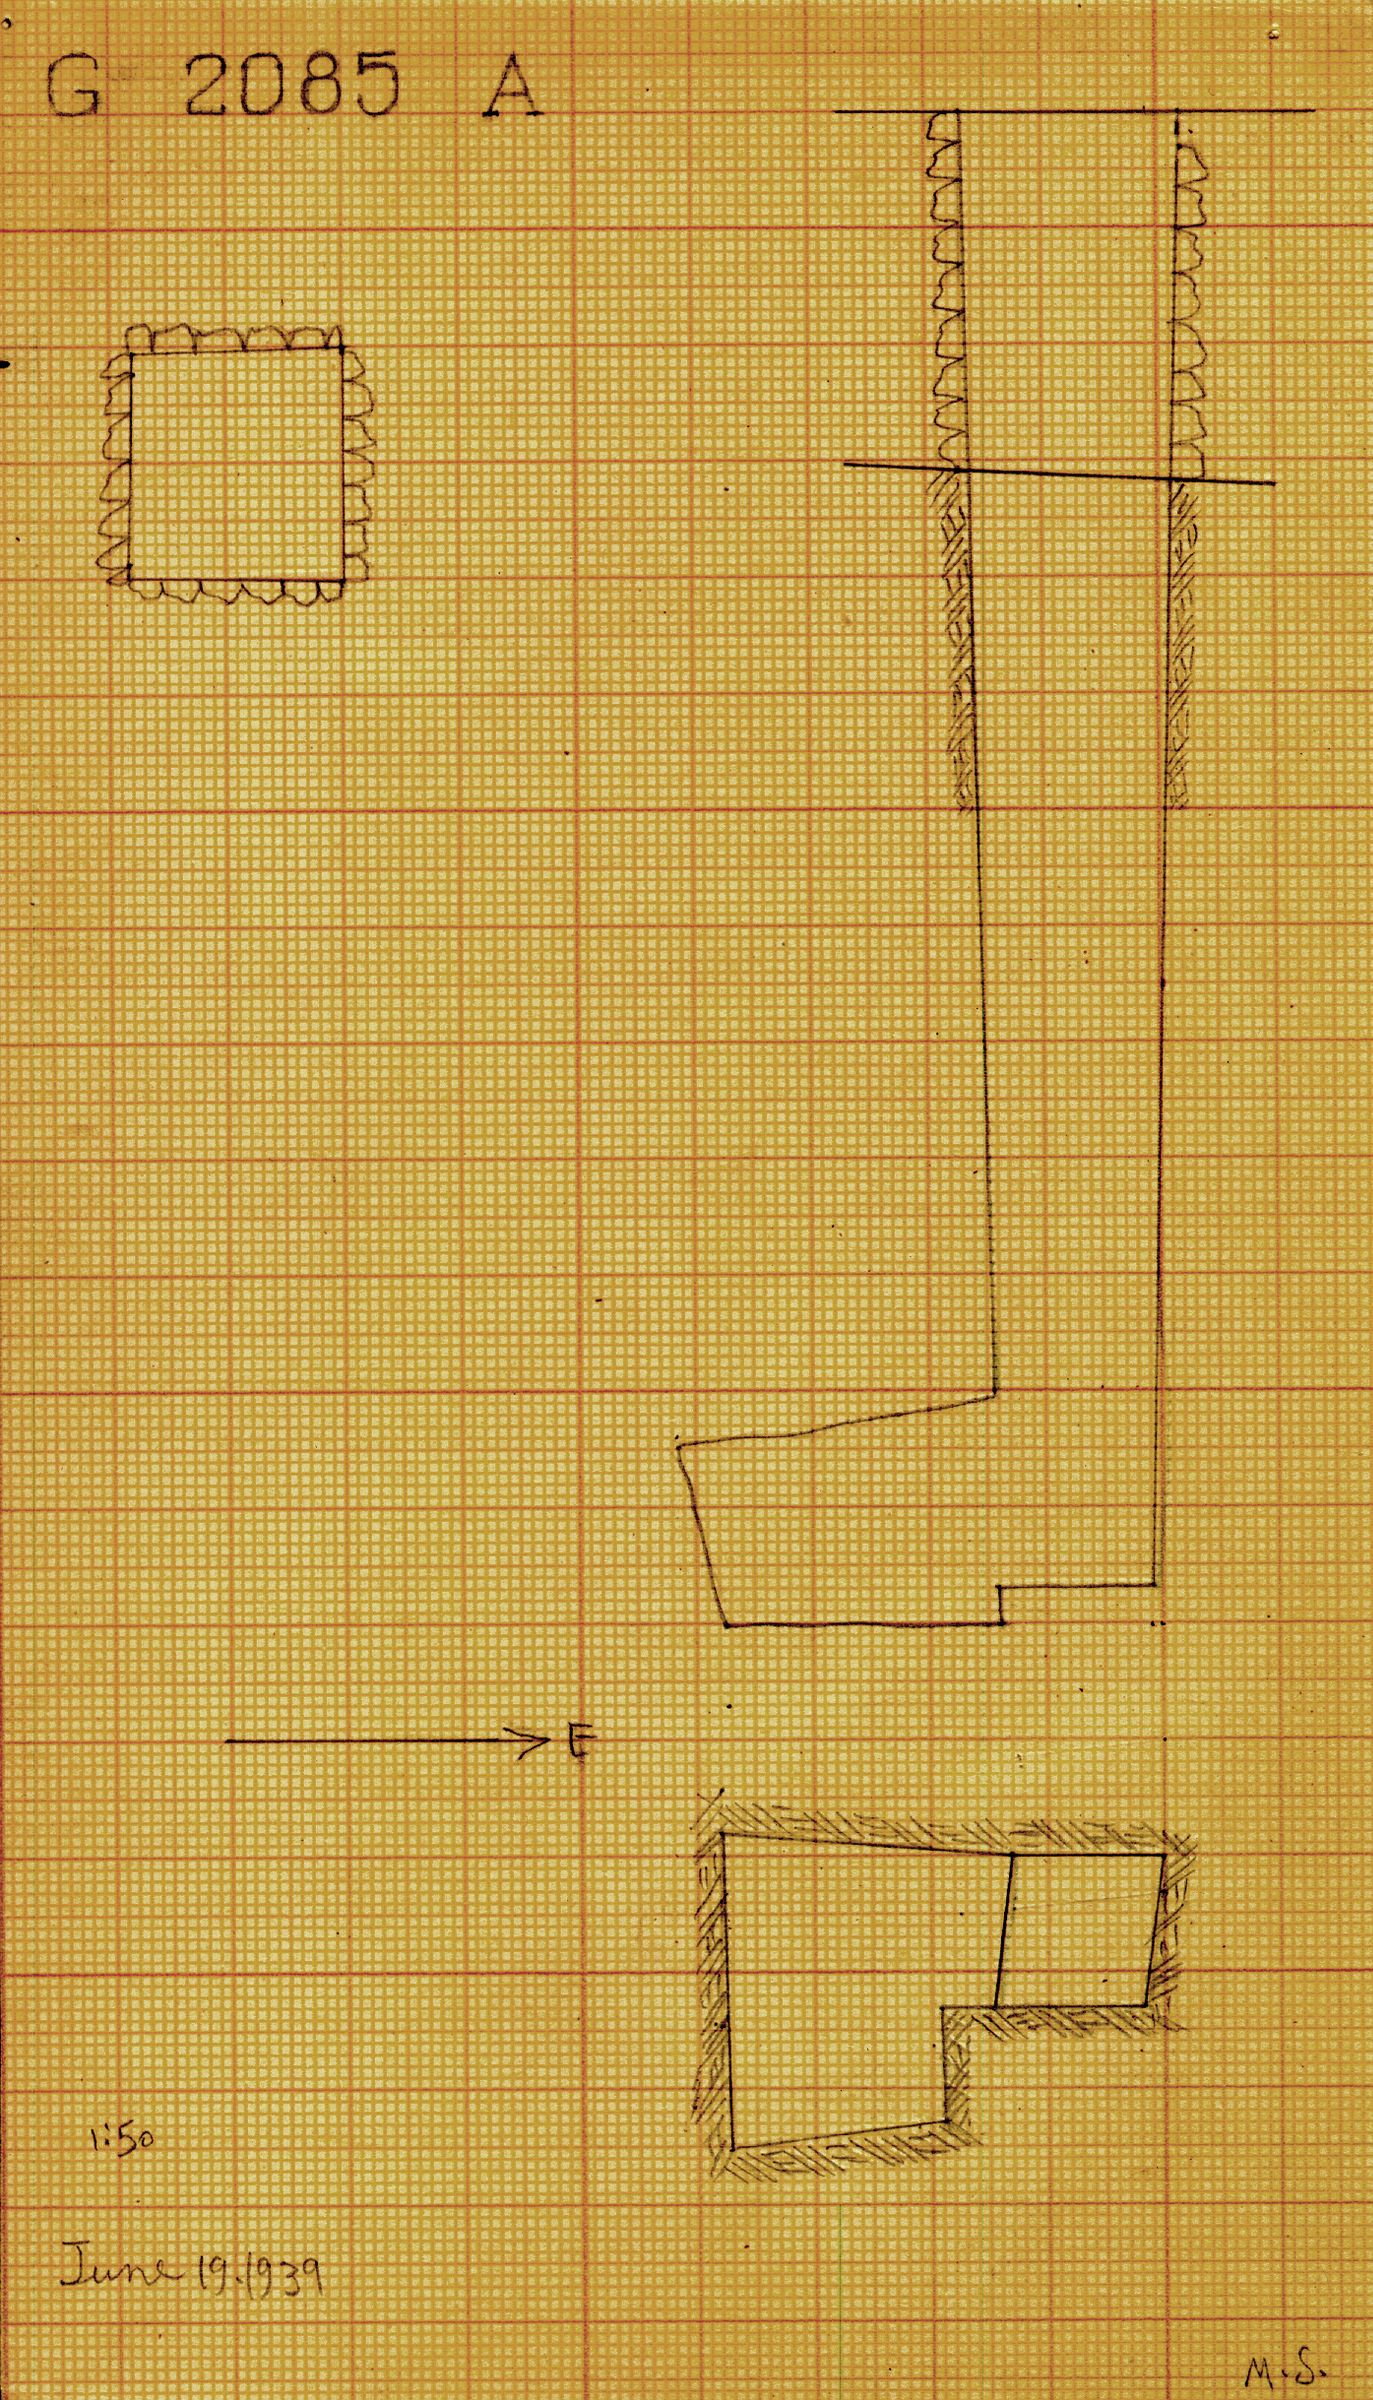 Maps and plans: G 2085, Shaft A